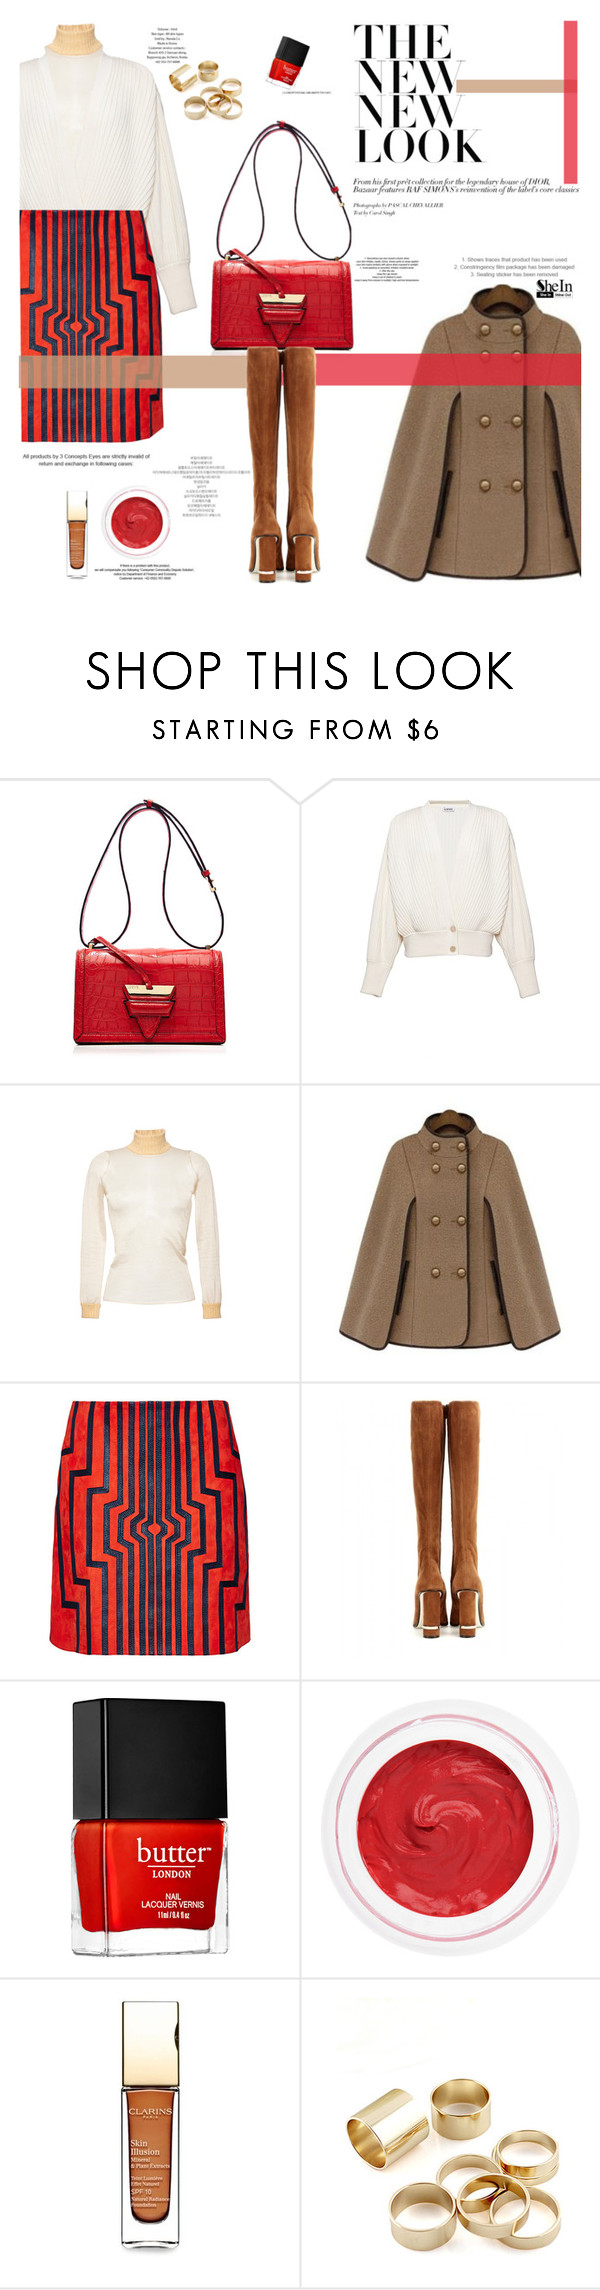 """Swinging times"" by naki14 ❤ liked on Polyvore featuring Loewe, Butter London, rms beauty and Clarins"